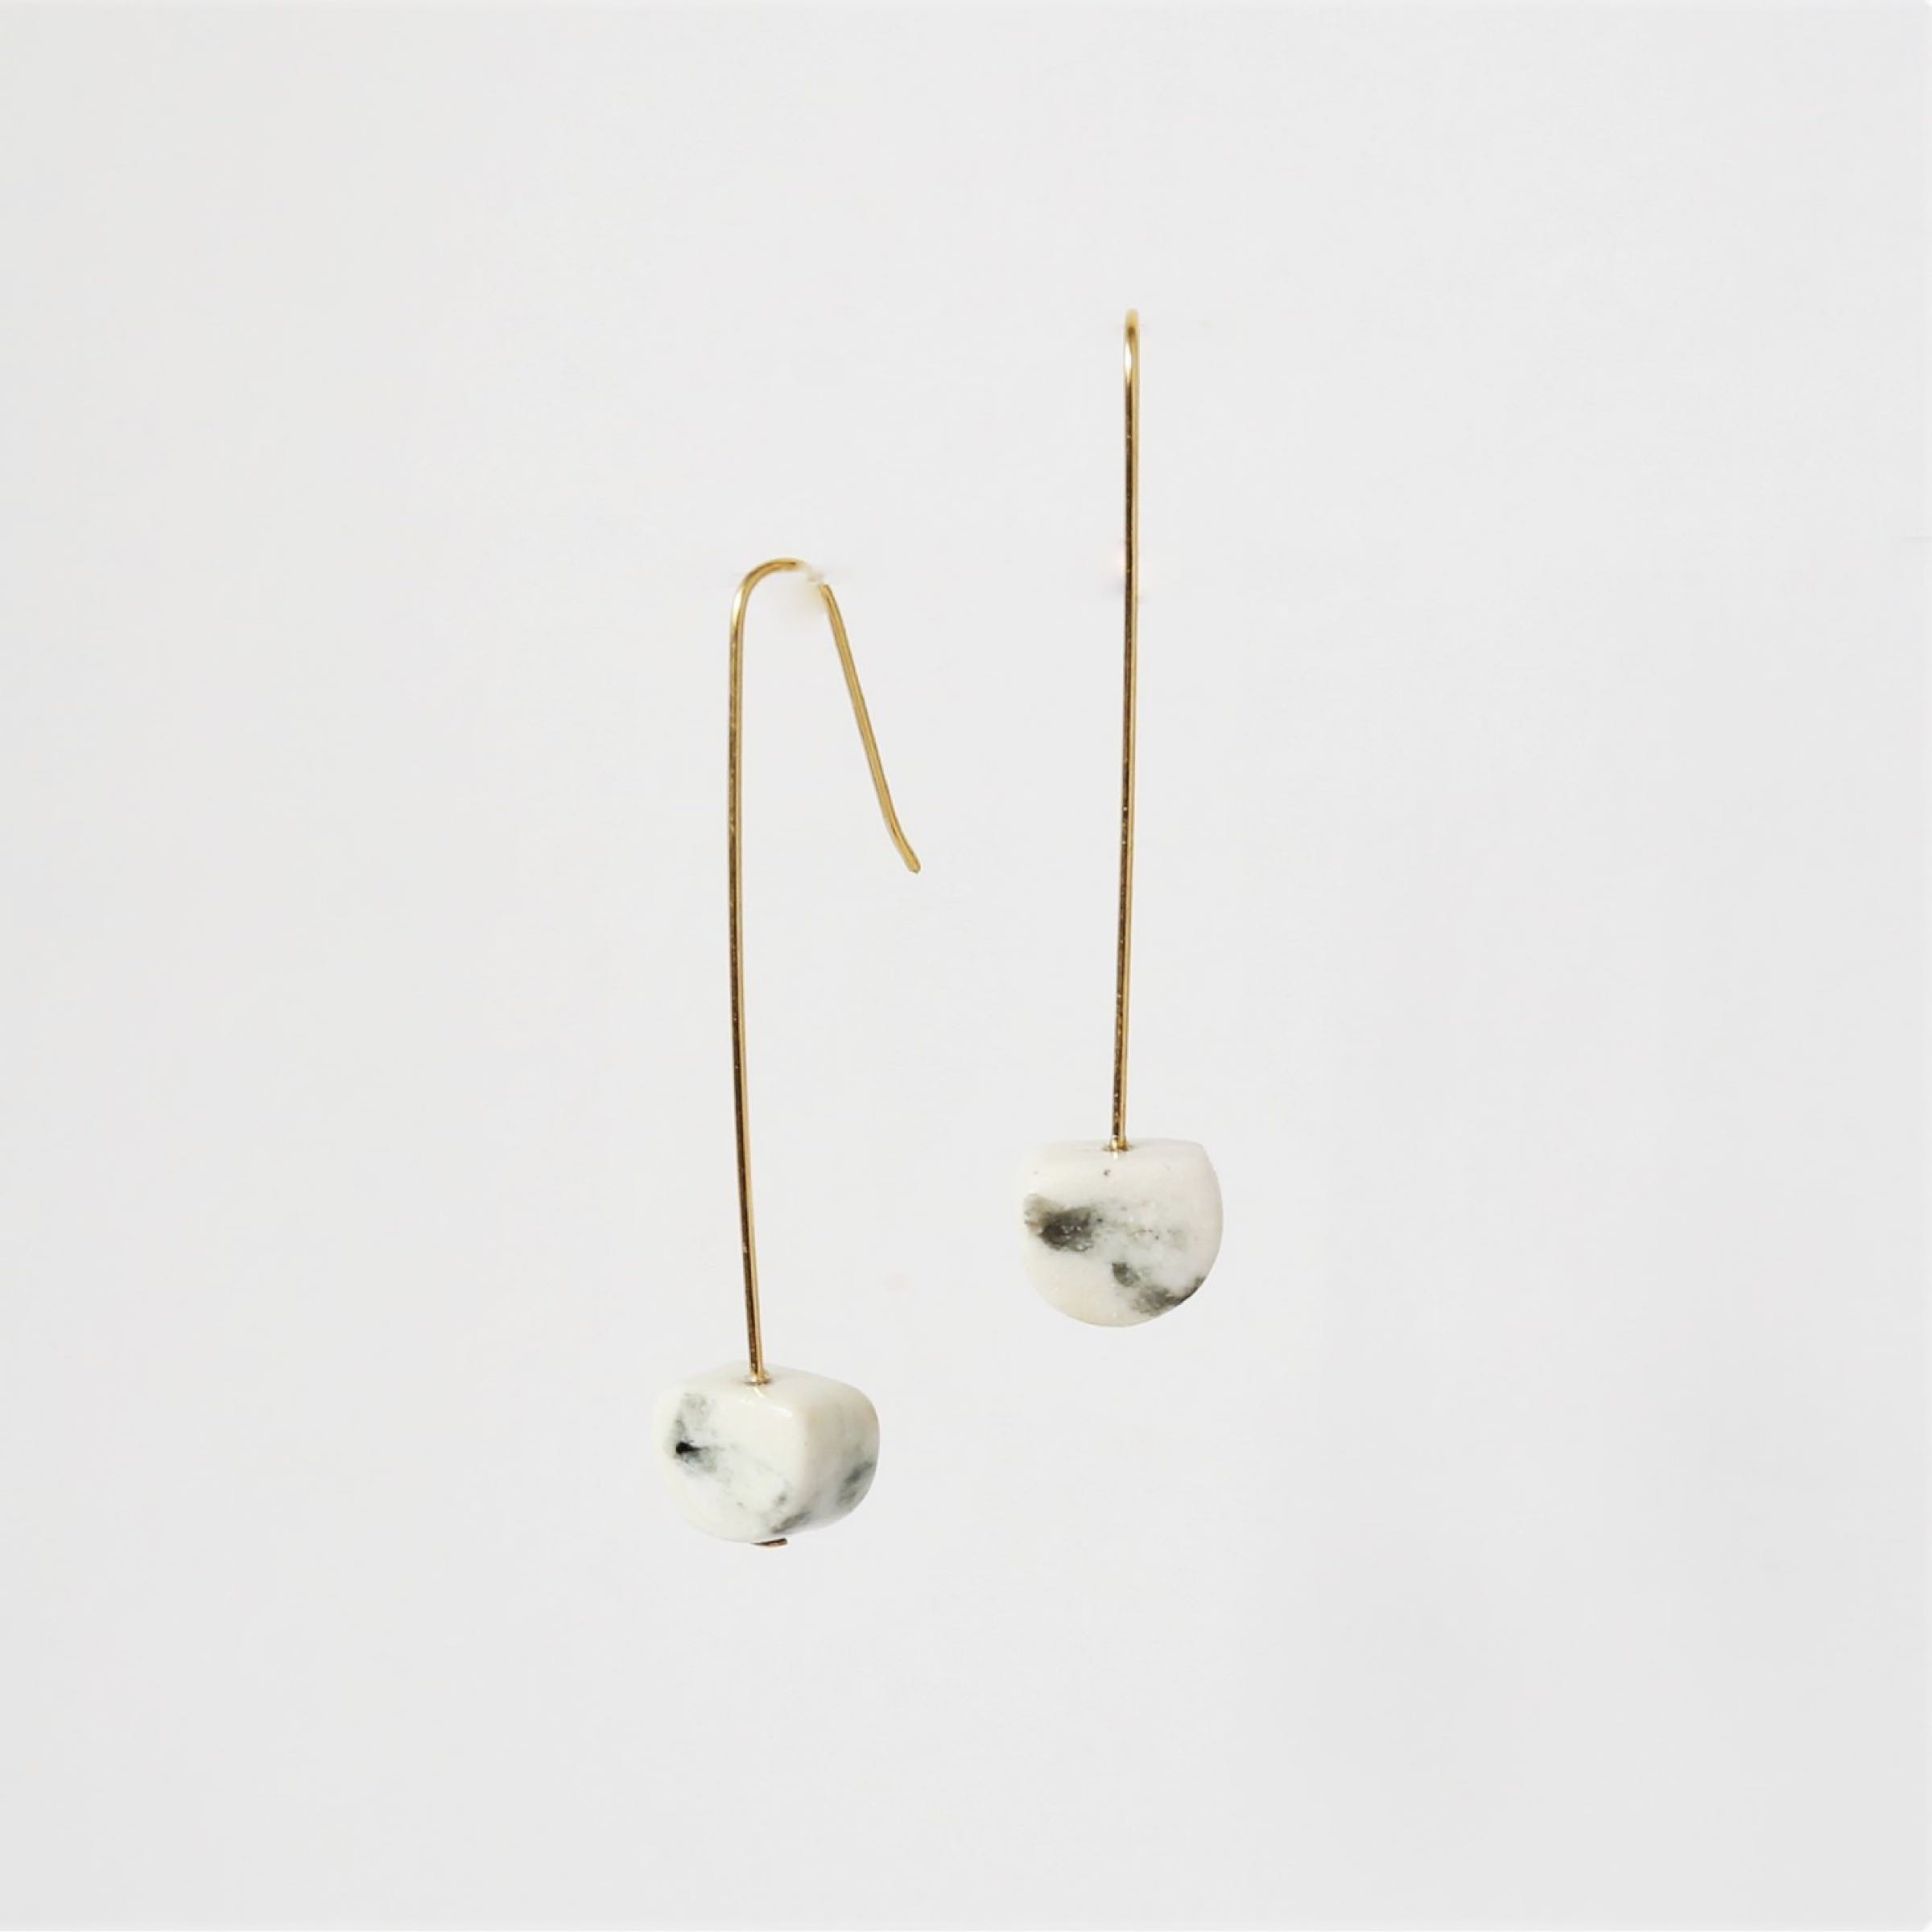 Glazed porcelain earrings on long gold plated wires by Clay Shed Studio